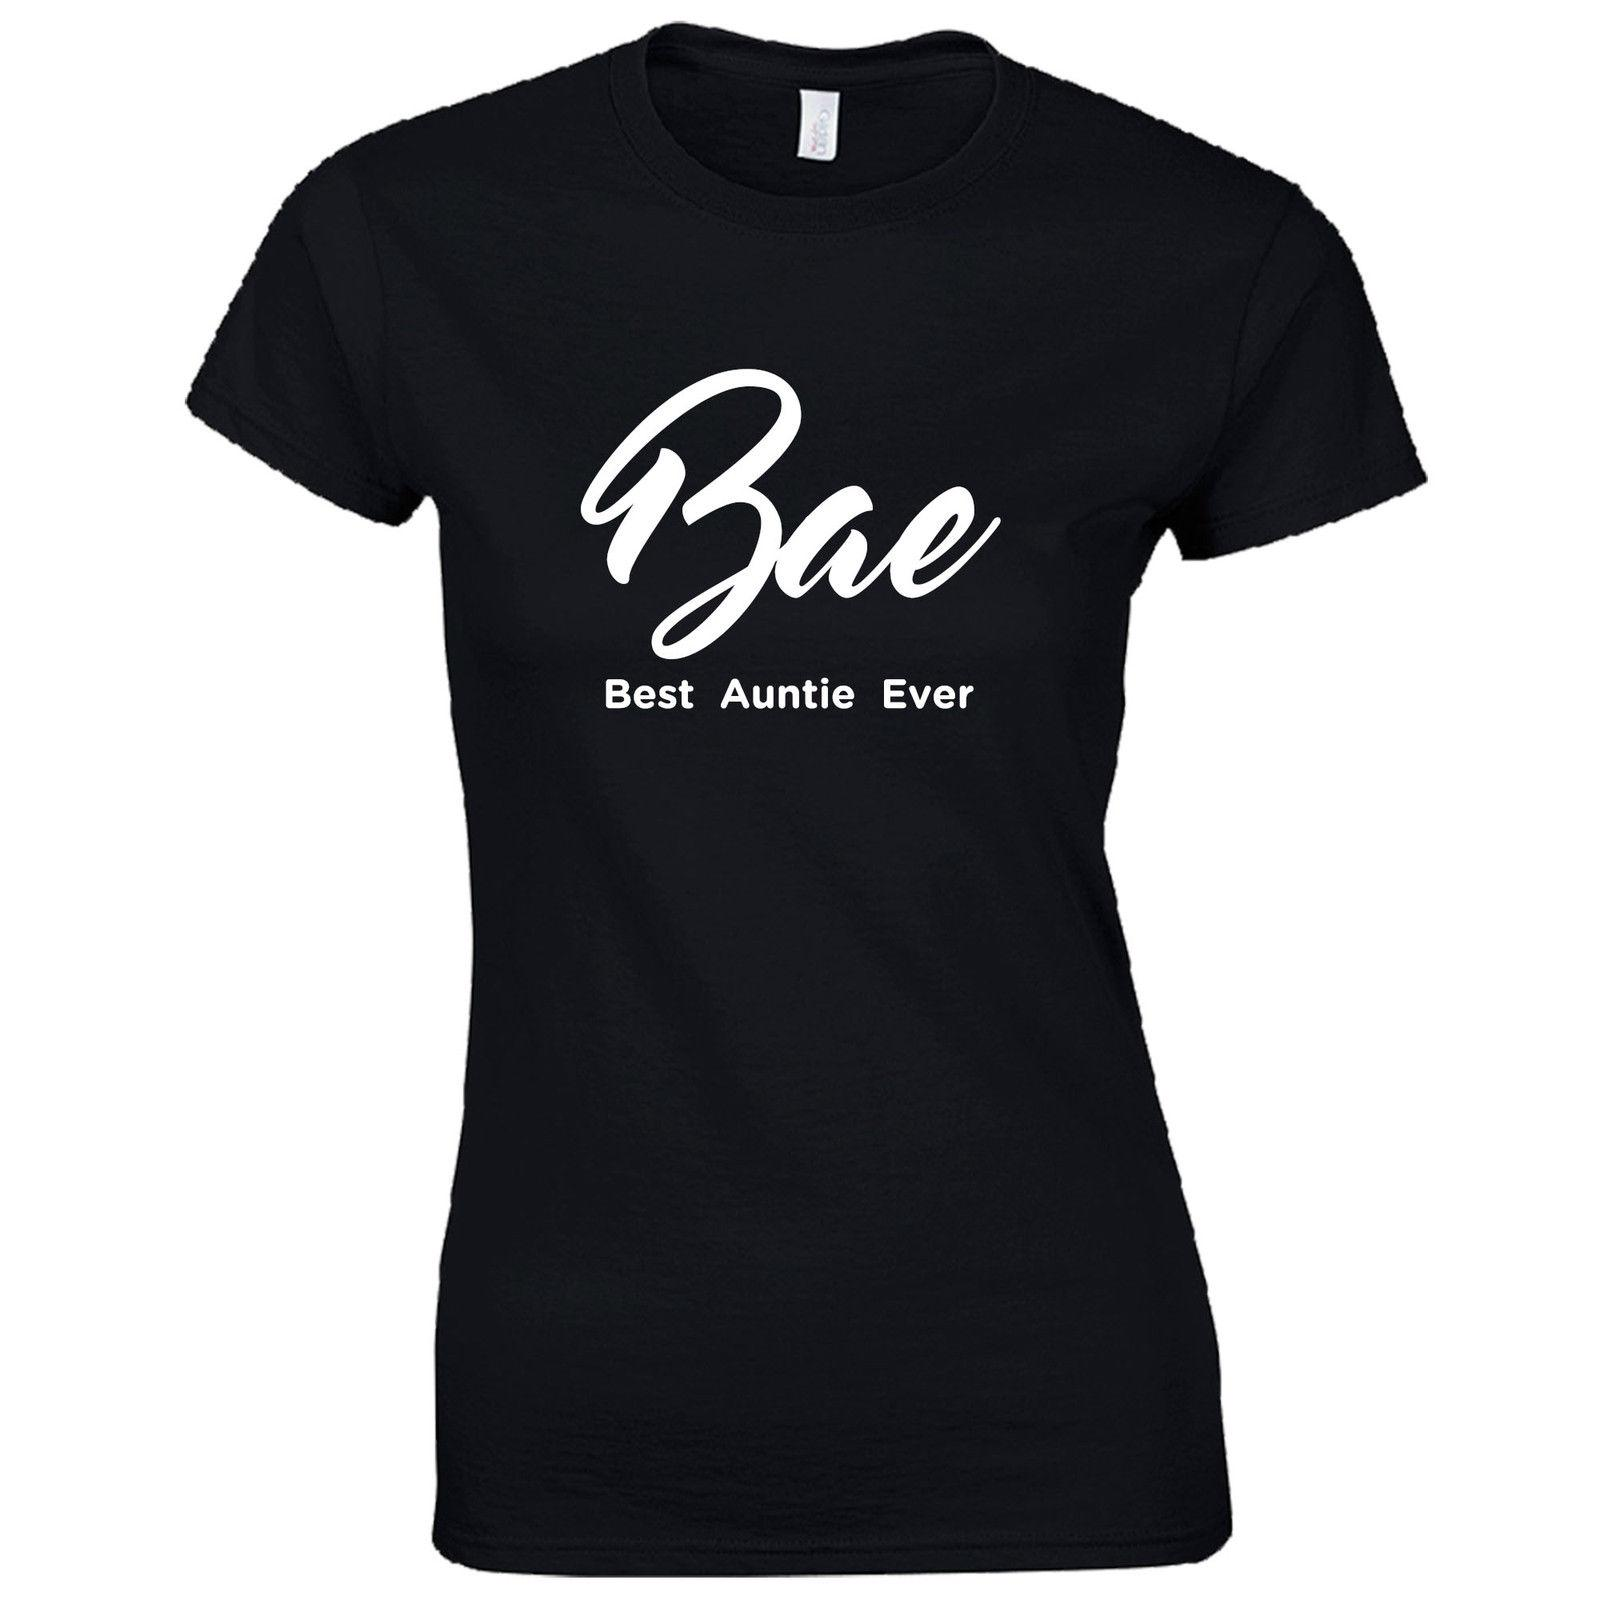 04291dbac BAE Best Auntie Ever Ladies Fitted T-Shirt - Funny Aunt Present Womens Gift  Top